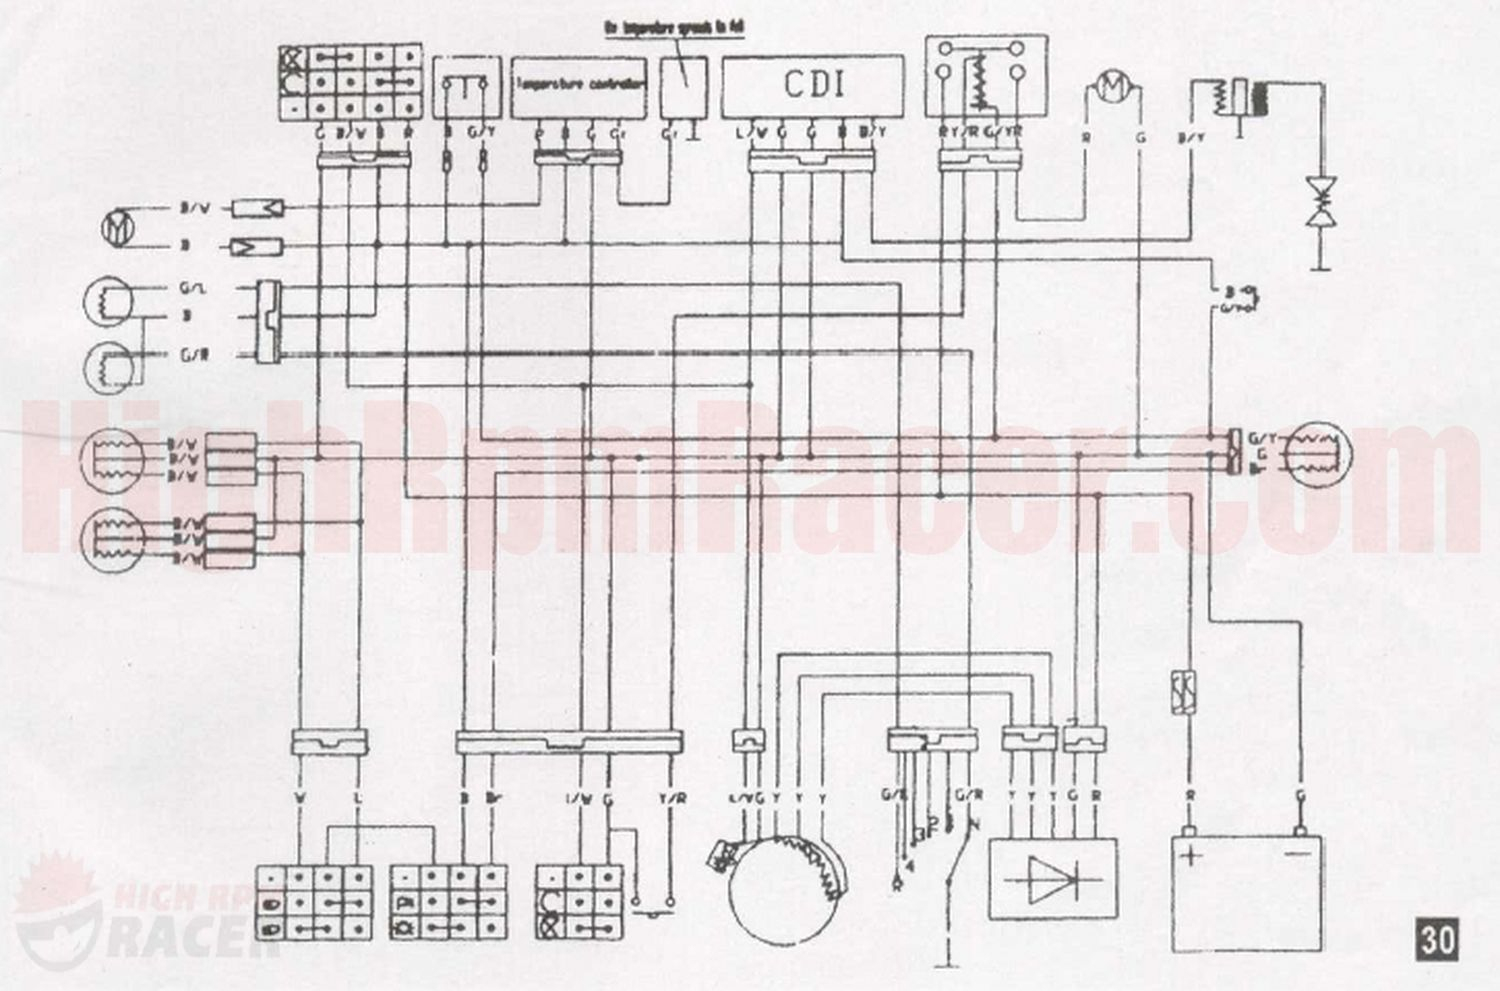 hight resolution of wiring diagram for loncin 110 with 5 pin cdi wiring diagram 5 pin cdi wiring diagram